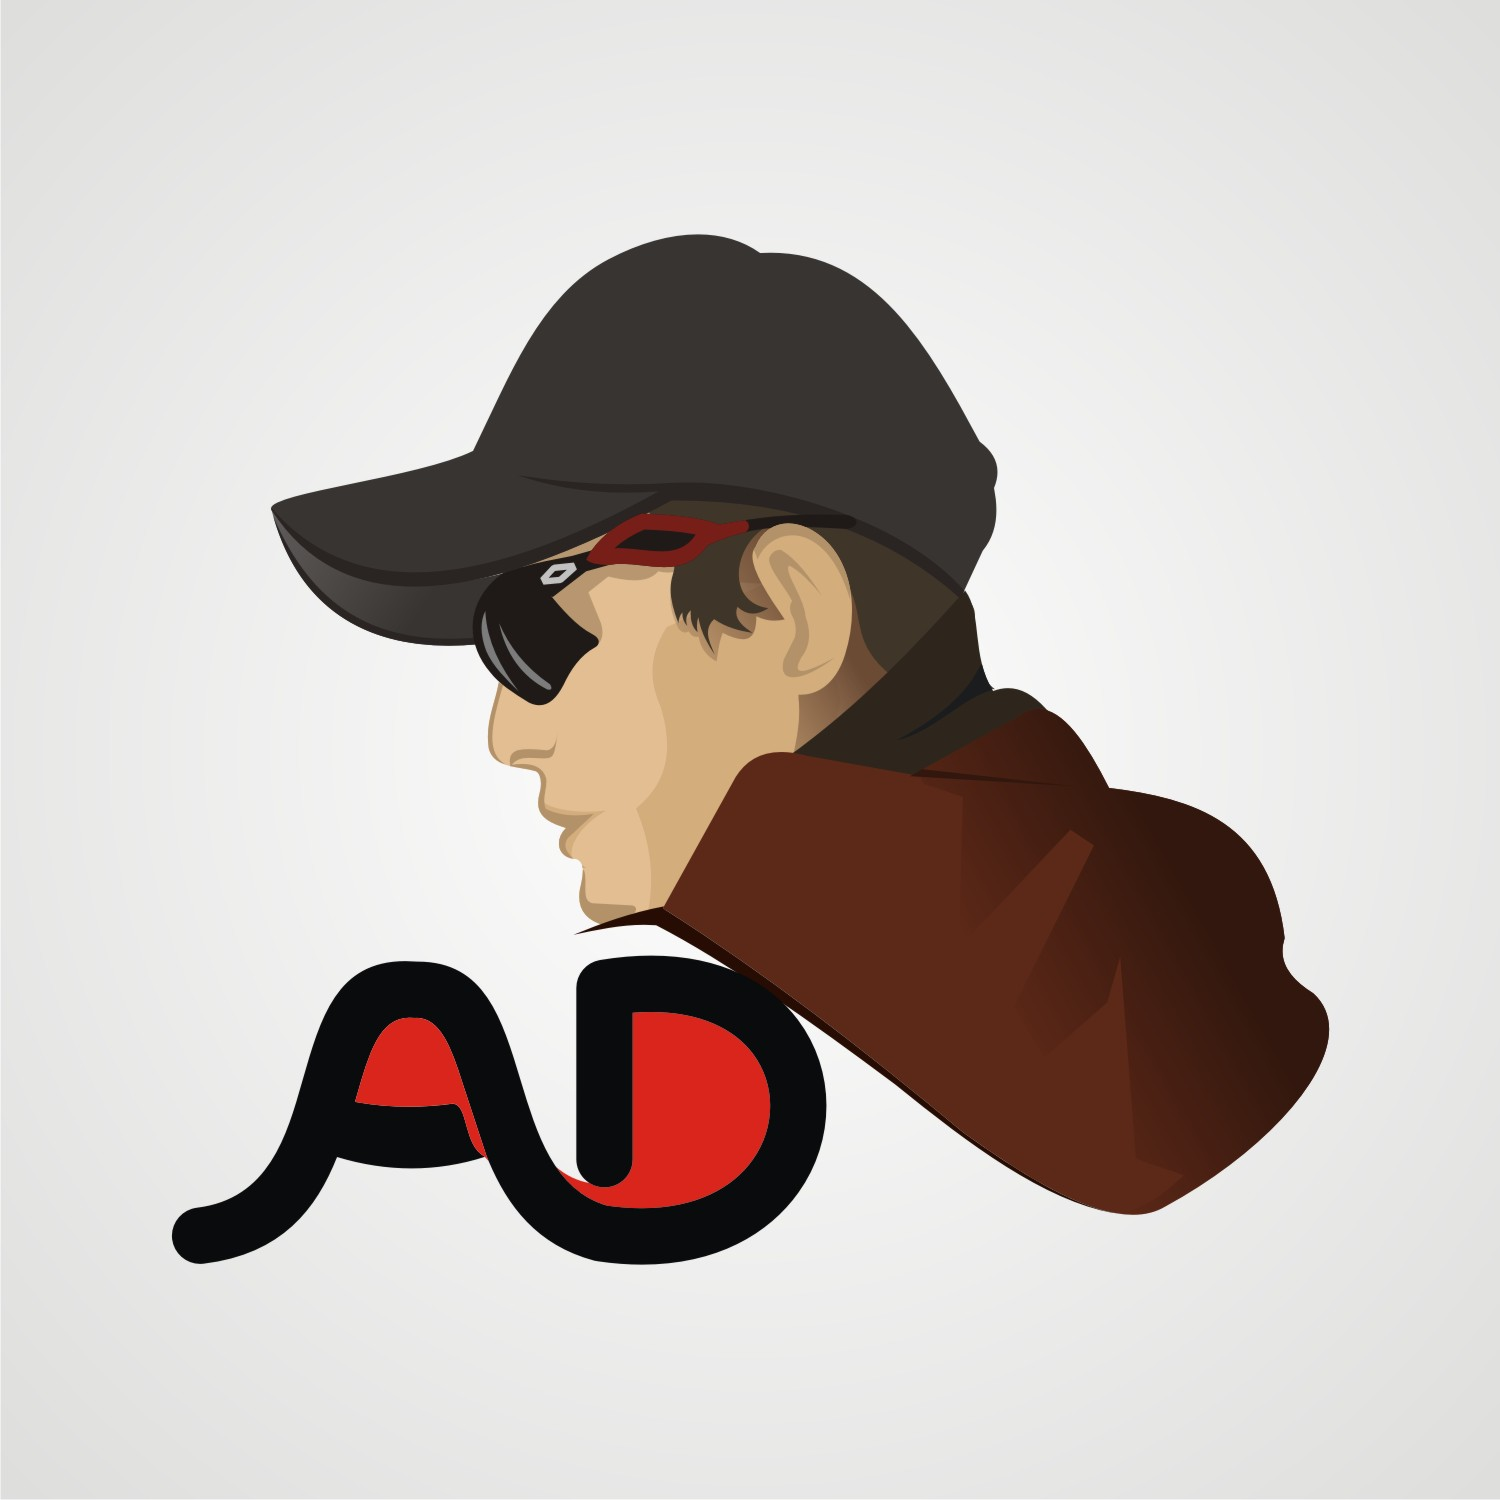 Ahsancomp Studio's profile picture